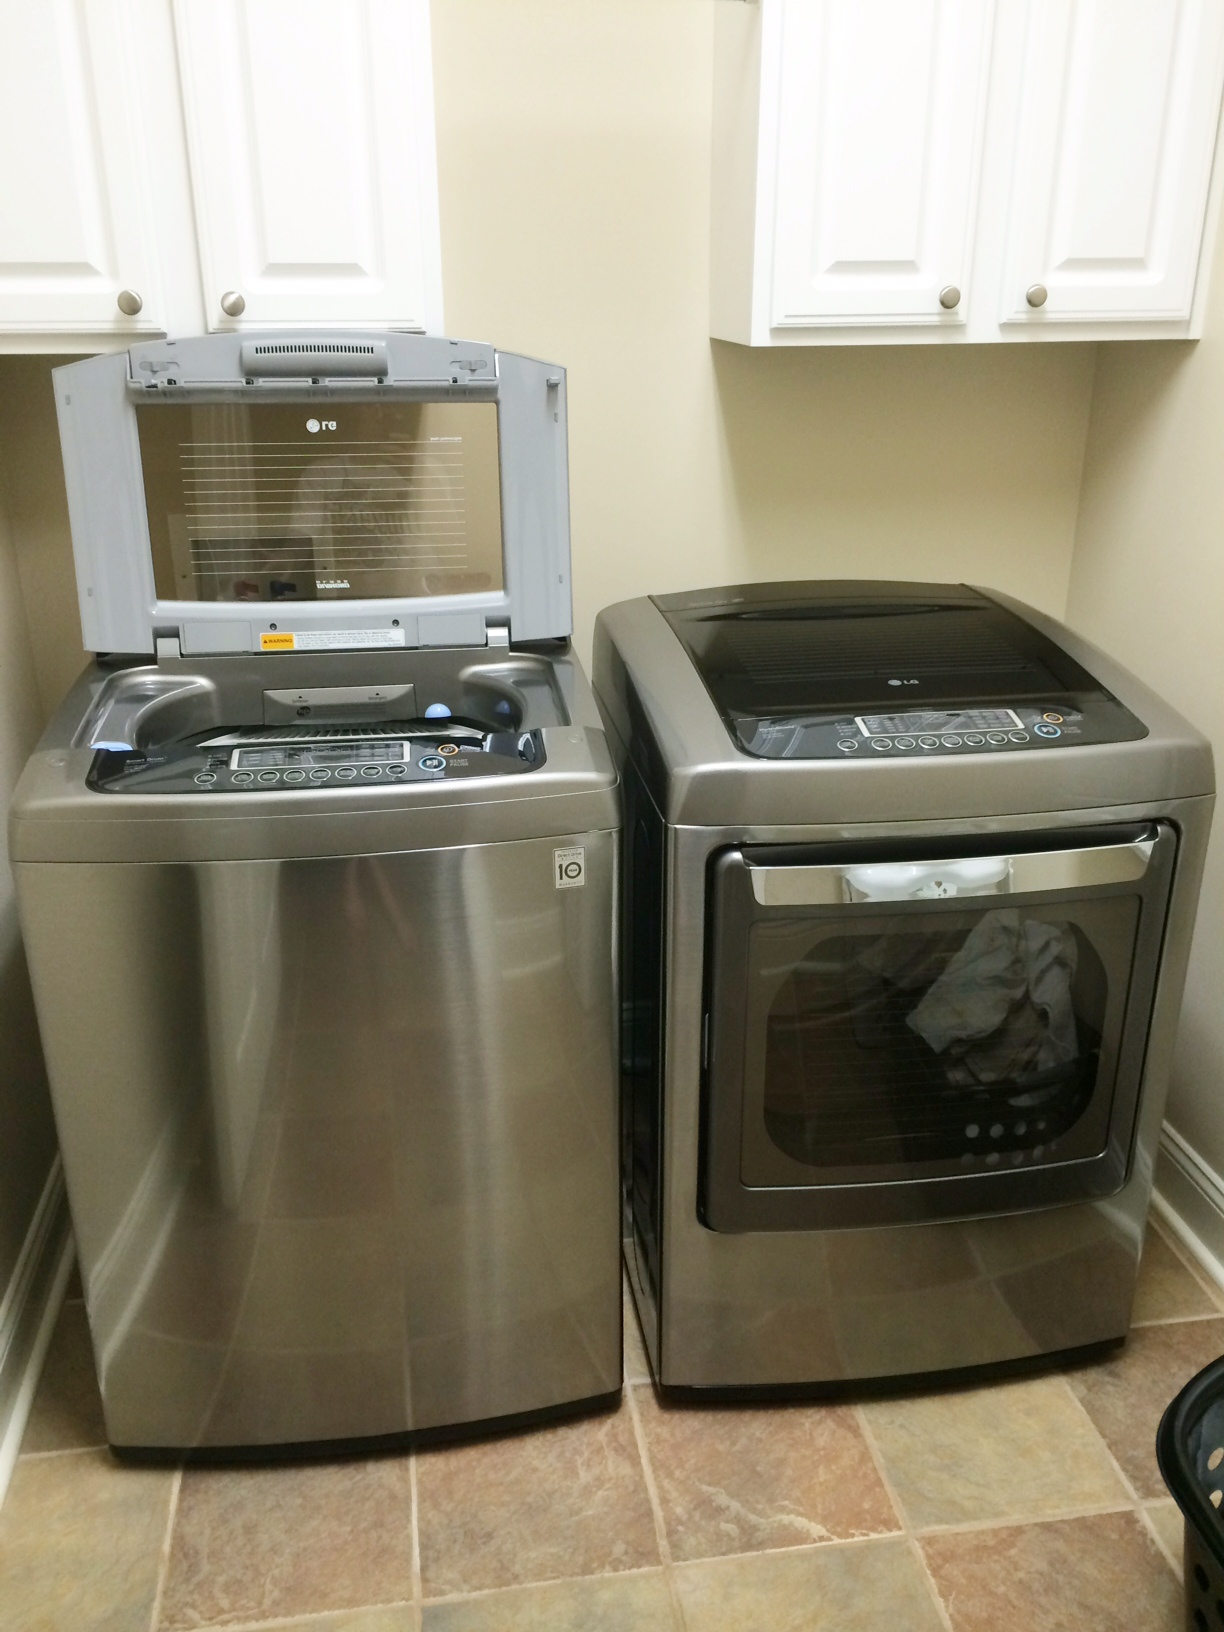 New LG 4.5 High Efficiency Top Load Washer and Dryer Review